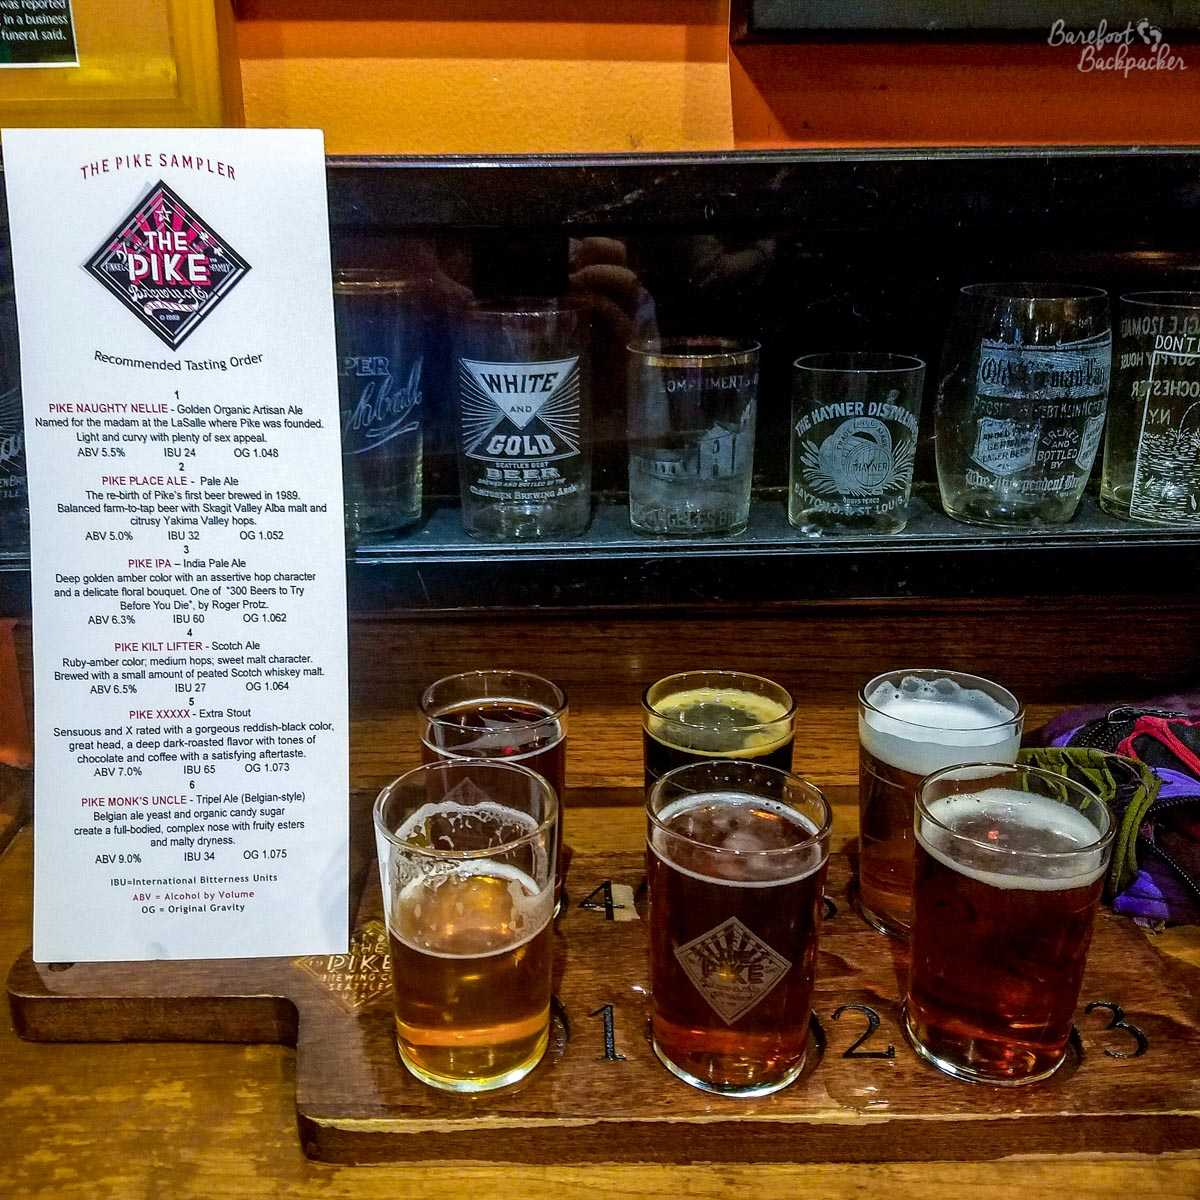 Flight of beers at Pike Place Brewery, Seattle WA